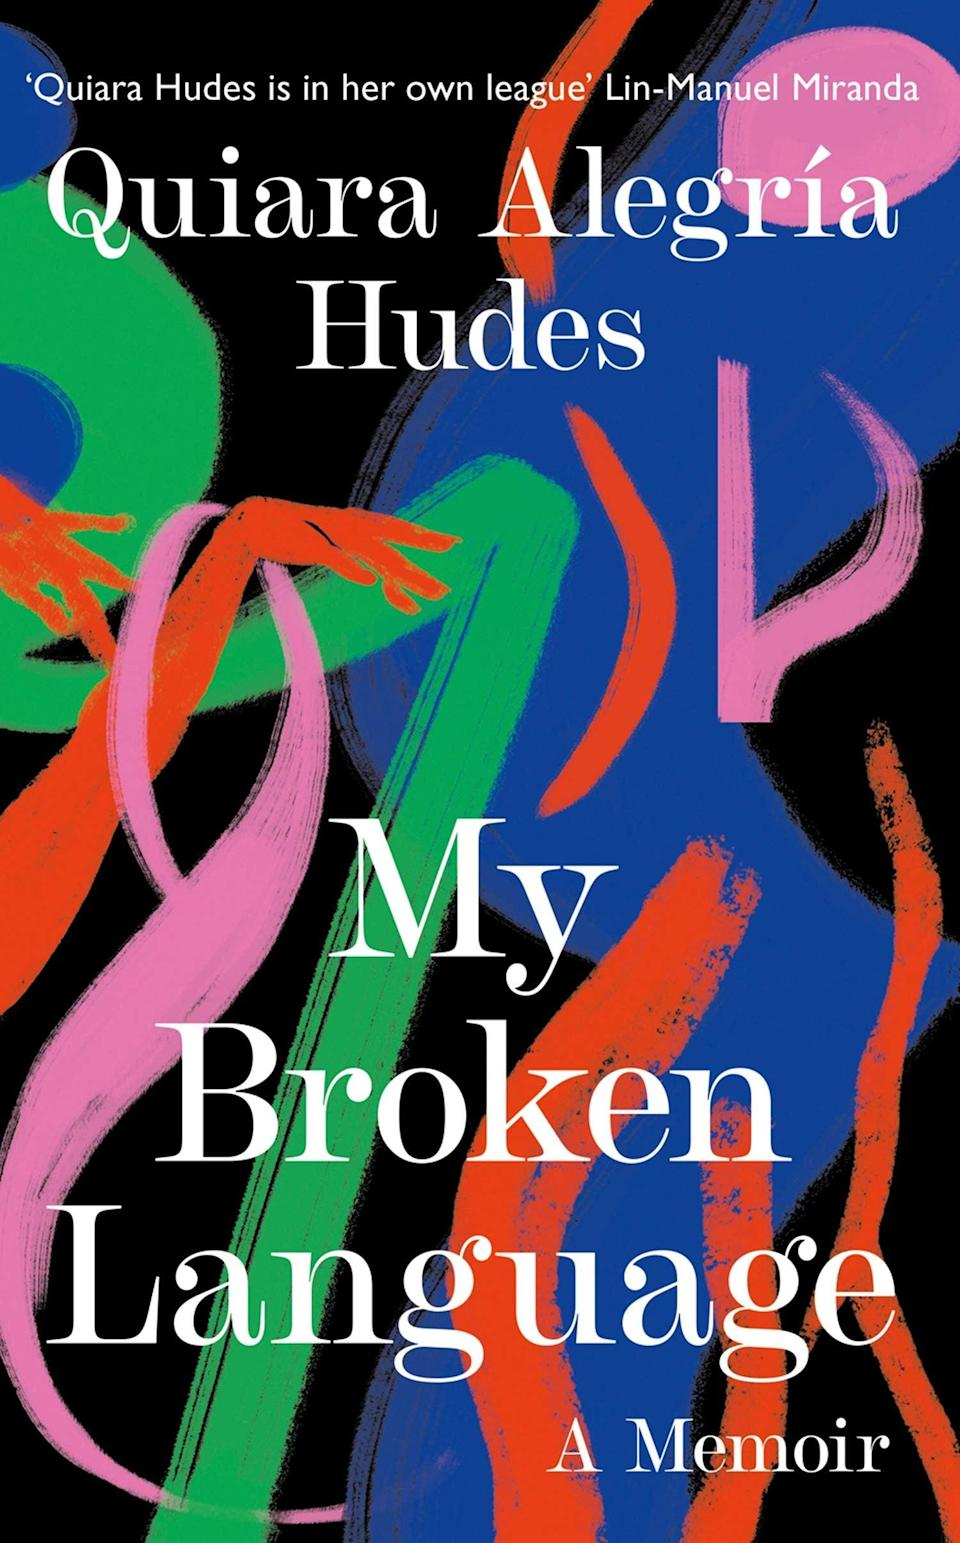 """<em><strong>My Broken Language: A Memoir </strong></em><strong>by Quiara Alegría Hudes </strong><br><br>If coming-of-age stories are your books of choice, then Quiara Alegría Hudes' memoir about her young life and finding her voice is exactly what you need. Growing up with a Jewish atheist father and a devoutly religious Puerto Rican mother, Quiara found her identity as a young person entirely confusing. When her dad was home, the entire house spoke English; when he left, her mother filled her north Philadelphia home with Spanish. As an adult, she began to reflect on what it meant to be raised in different cultures and how the strong women in her life had moulded her. Embarking on a journey to find her own personal truth, the memoir speaks to the power of art and what the meaning of home really represents.<br><br><em>Available to purchase now.</em><br><br><strong>Quiara Alegria Hudes</strong> My Broken Language: A Memoir, $, available at <a href=""""https://uk.bookshop.org/books/my-broken-language-a-memoir-9780008464622/9780008464622"""" rel=""""nofollow noopener"""" target=""""_blank"""" data-ylk=""""slk:bookshop.org"""" class=""""link rapid-noclick-resp"""">bookshop.org</a>"""